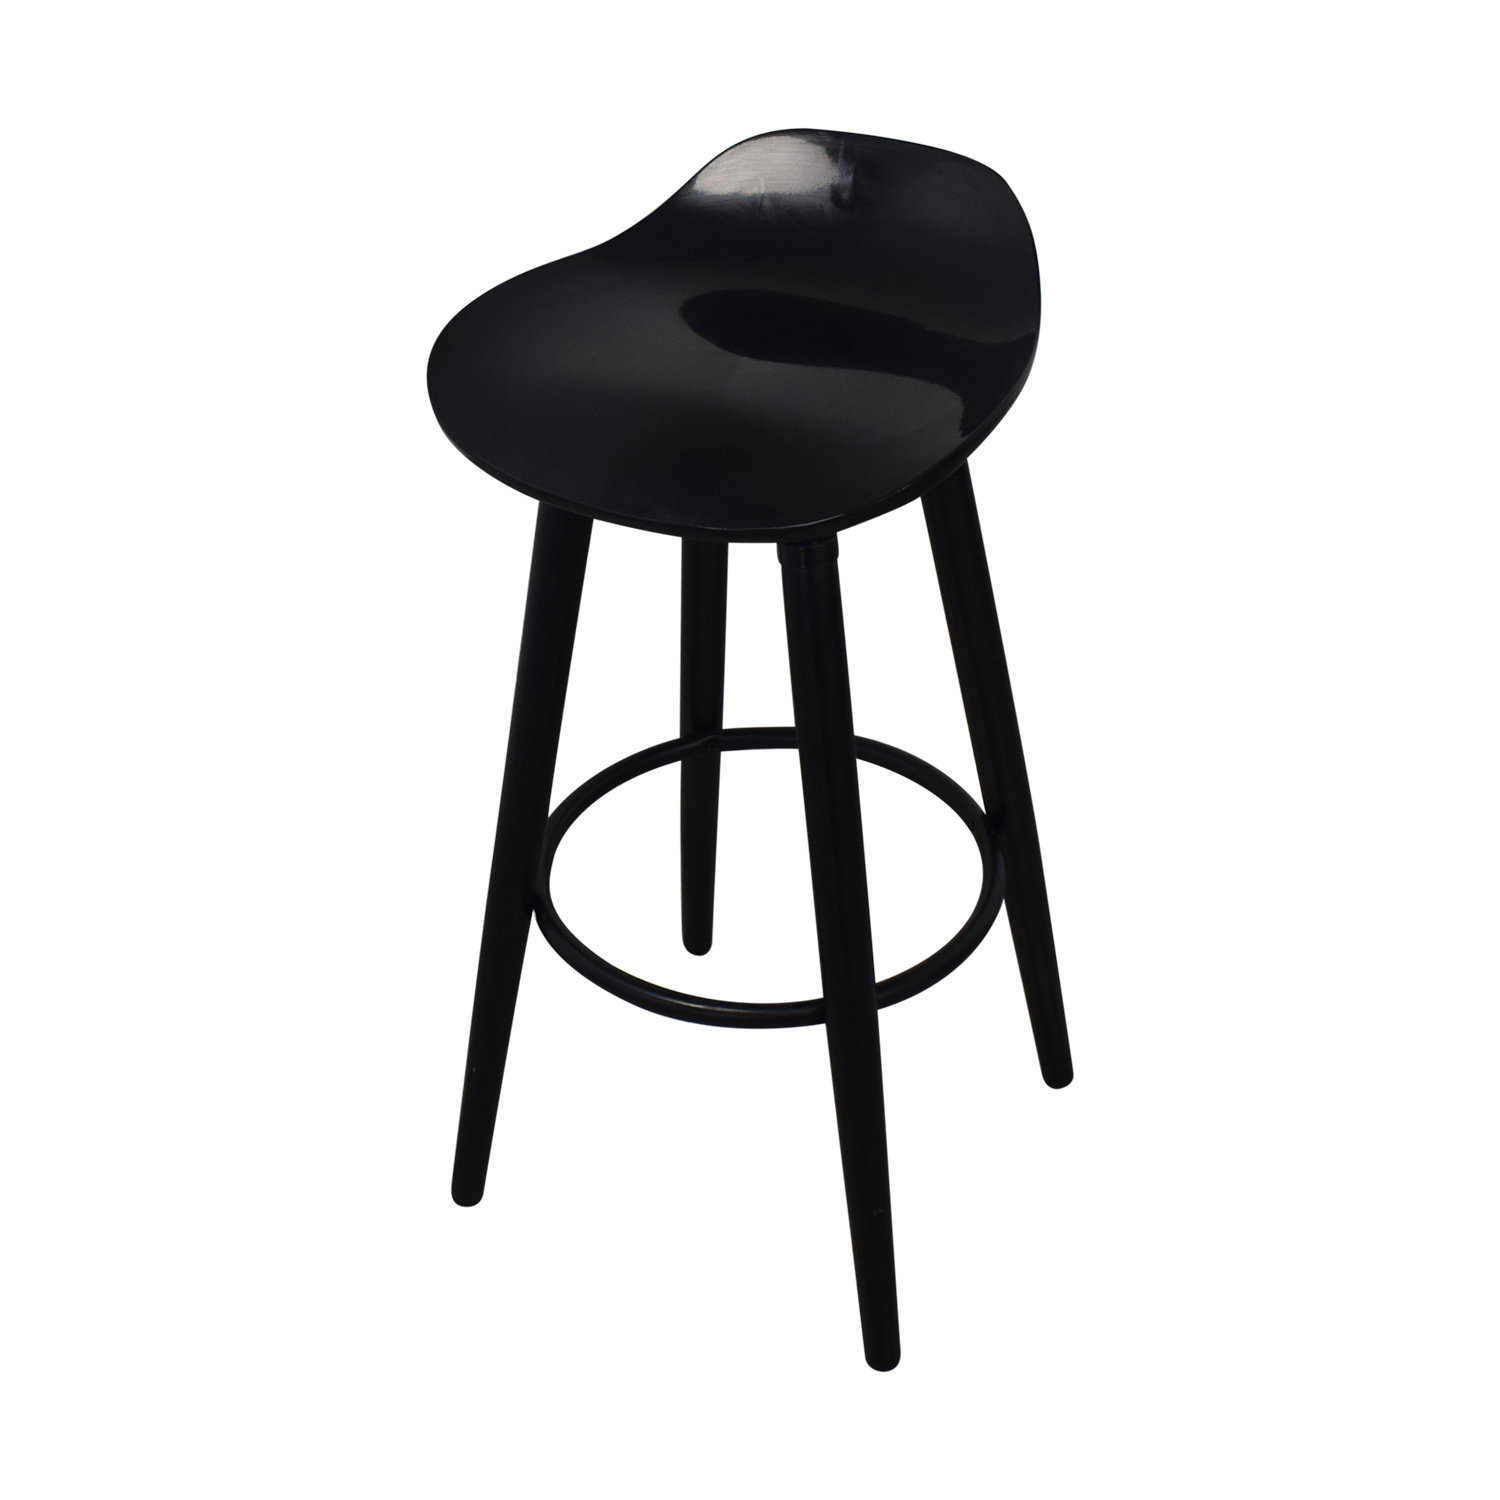 buy Sleek Black Modern Bar Stools  Stools